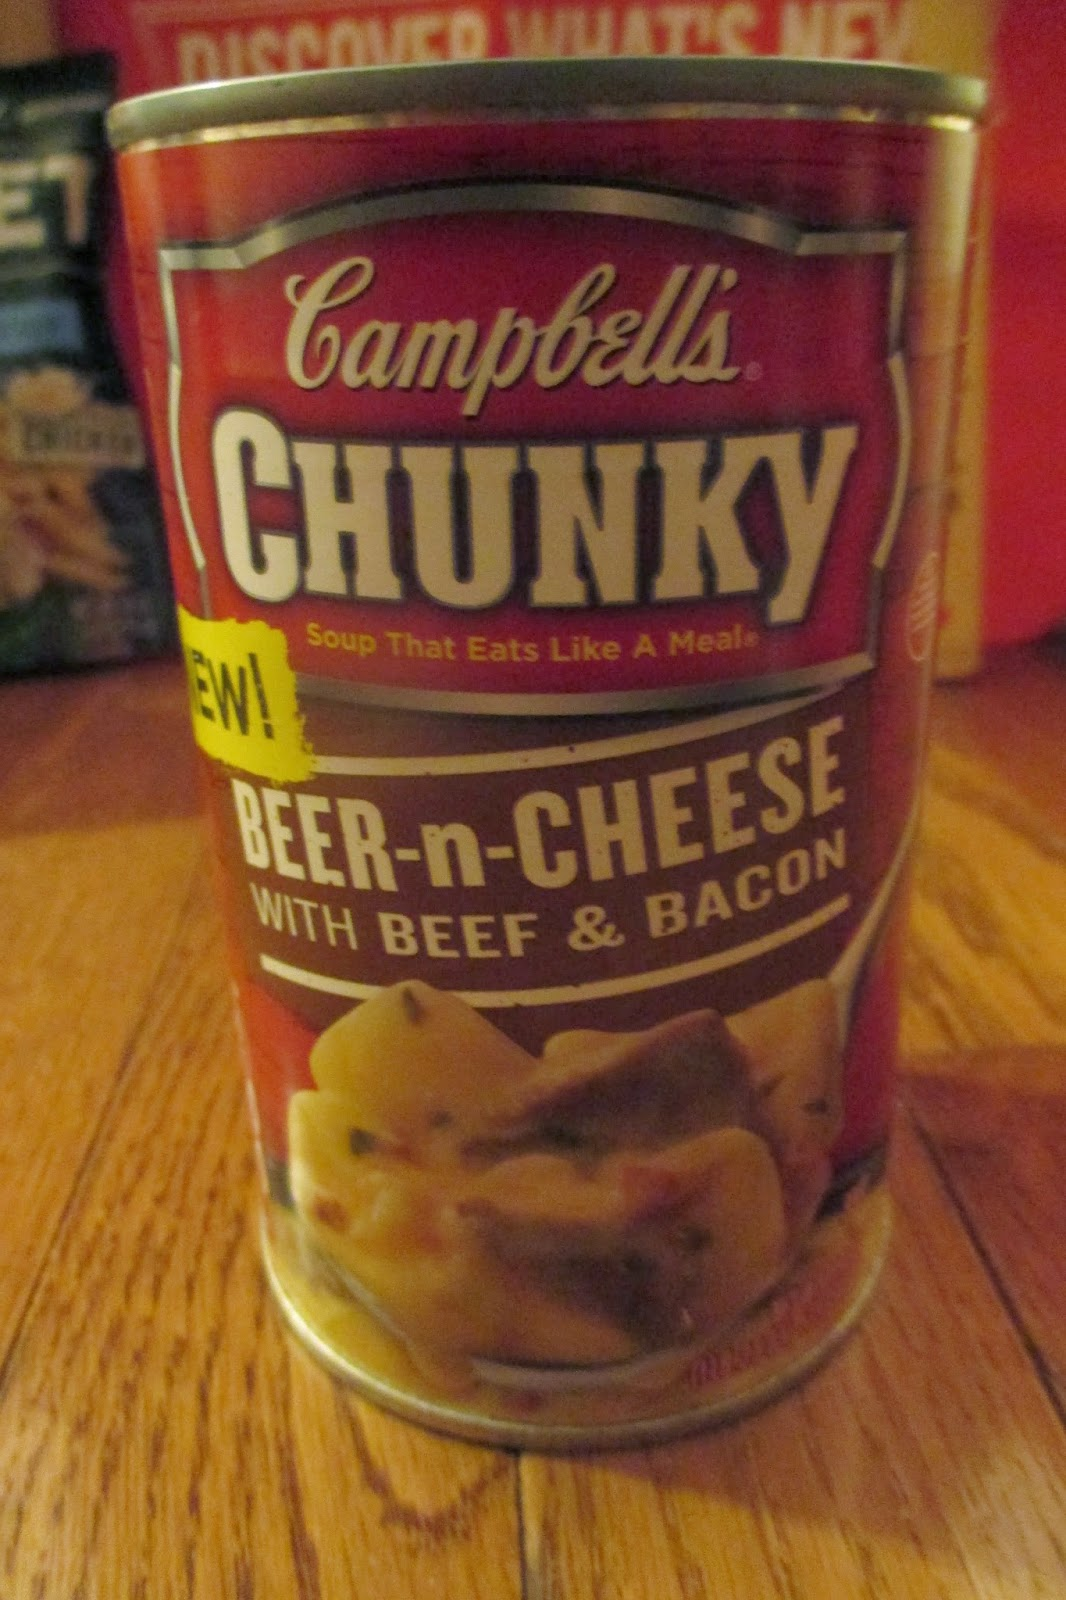 Campbell's Chunky Beer-n-Chees with beef and bacon soup